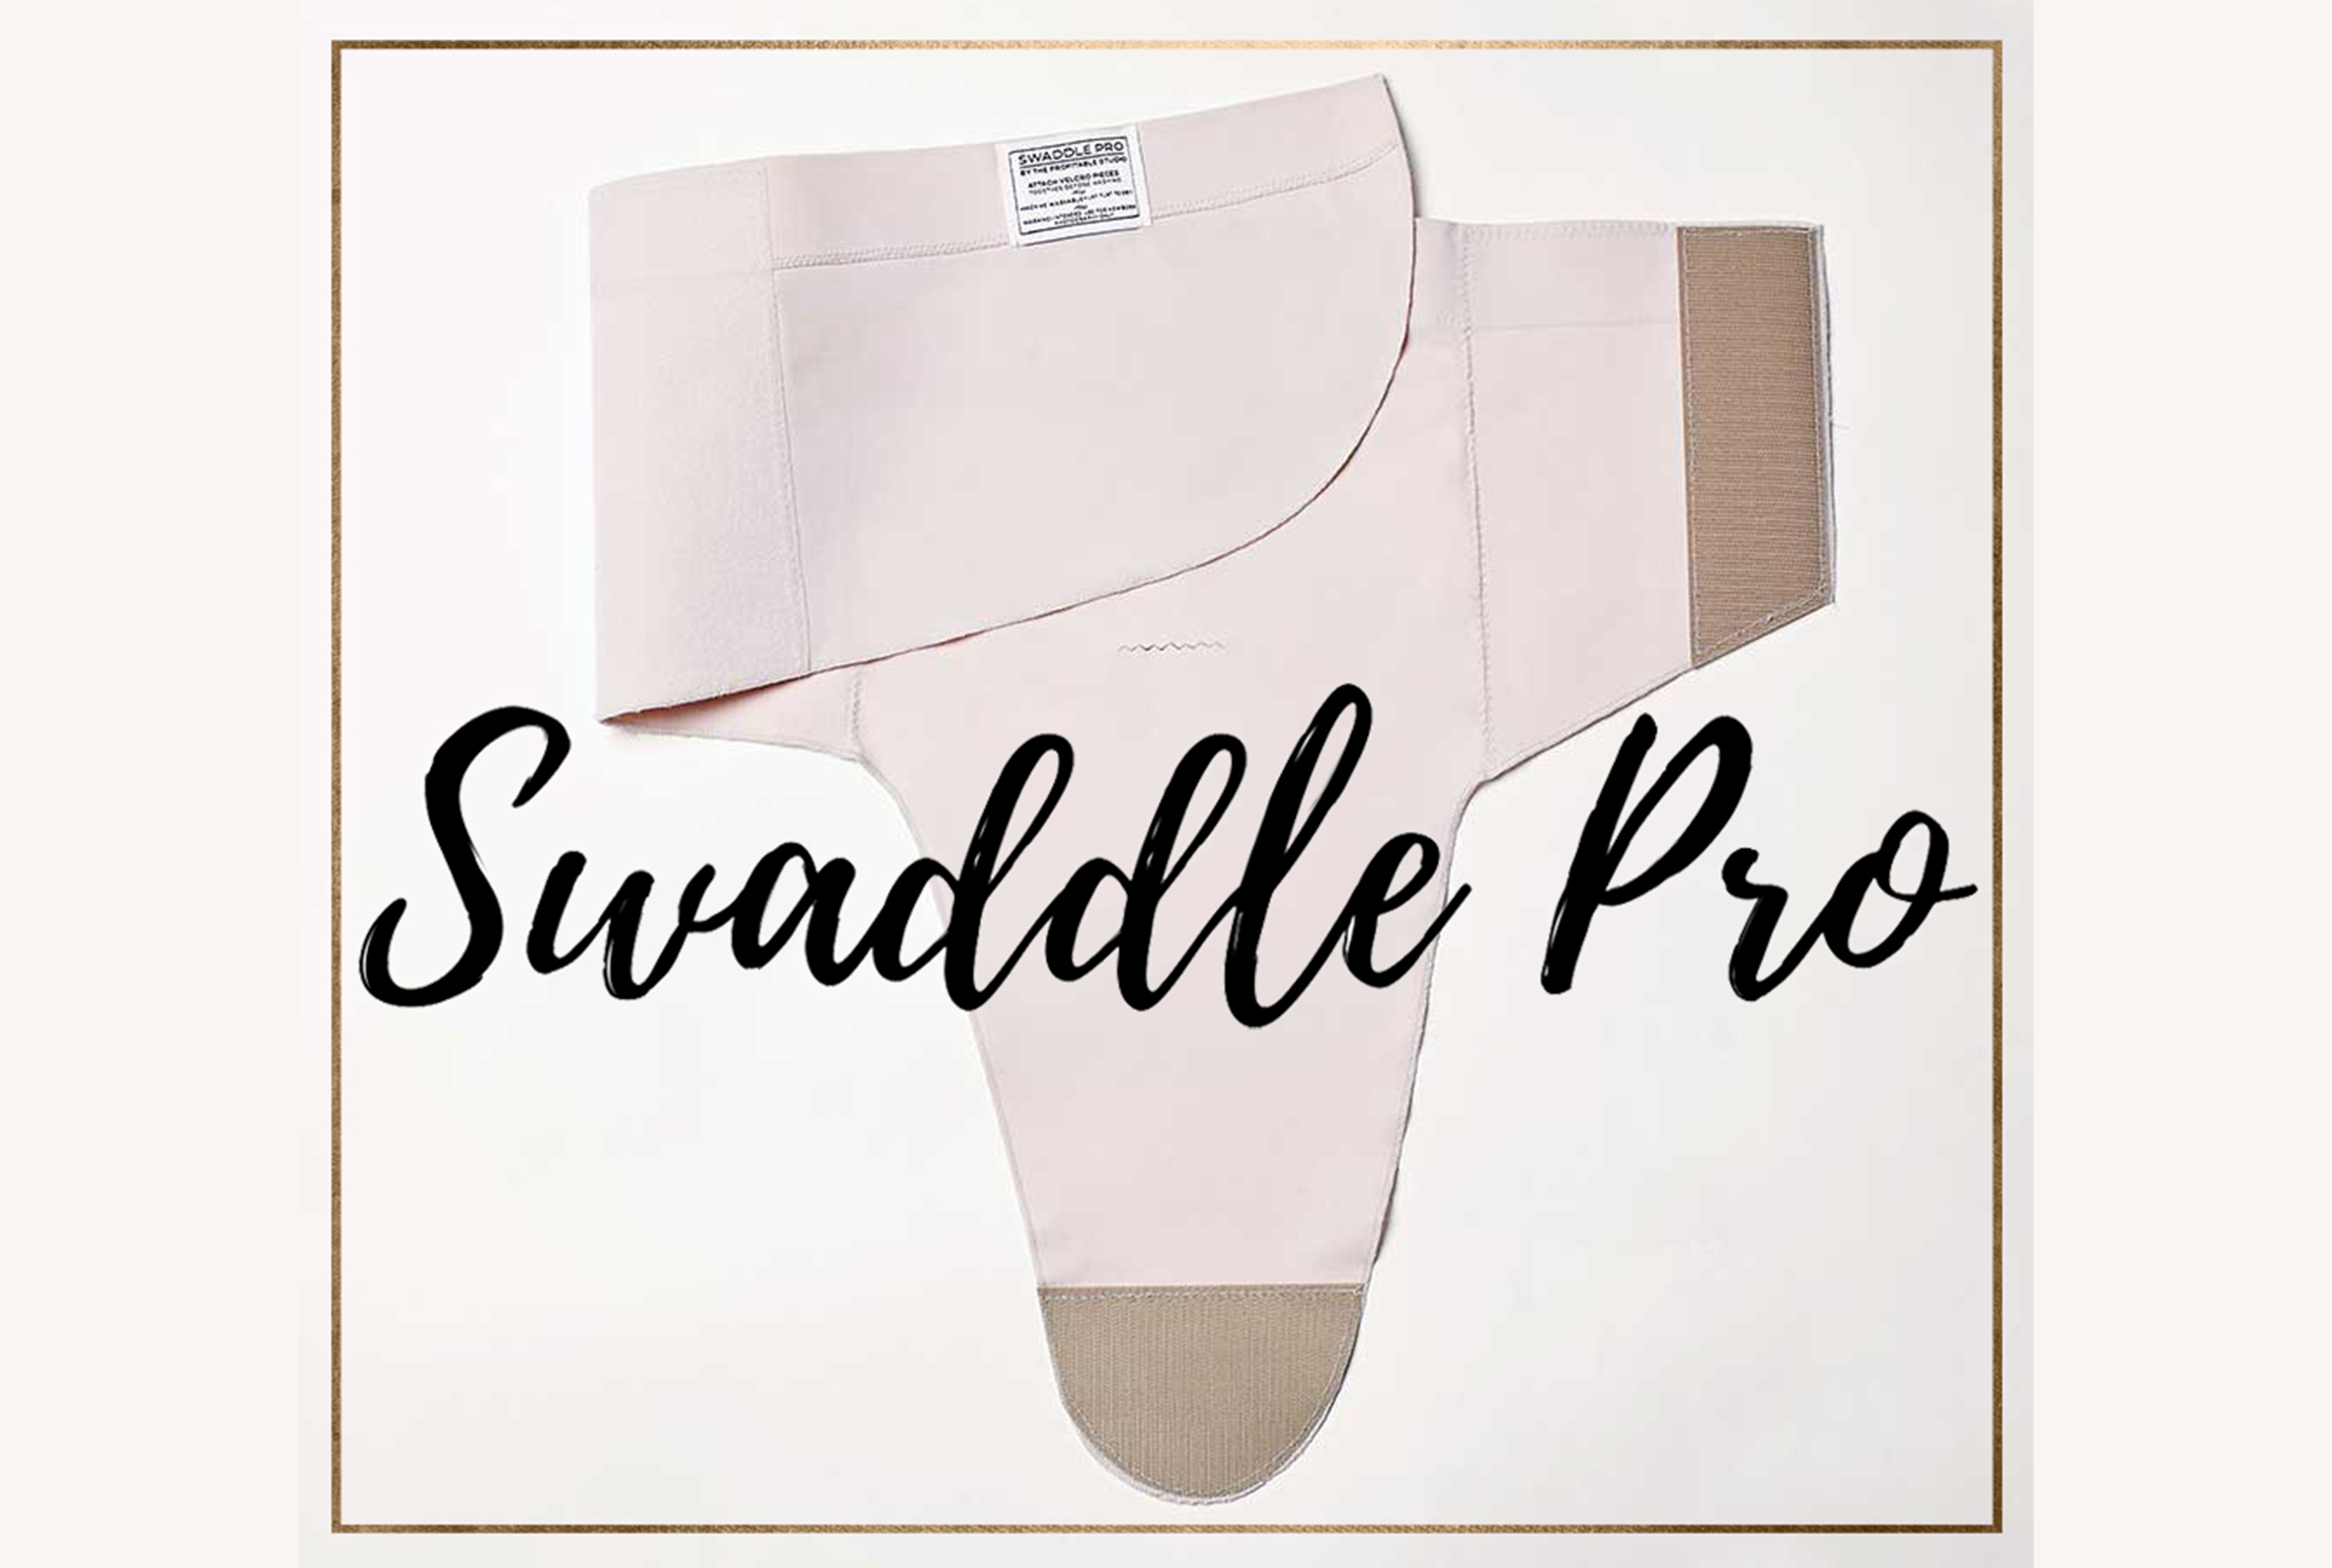 FEATURED VENDOR: Swaddle Pro by The Profitable Studio